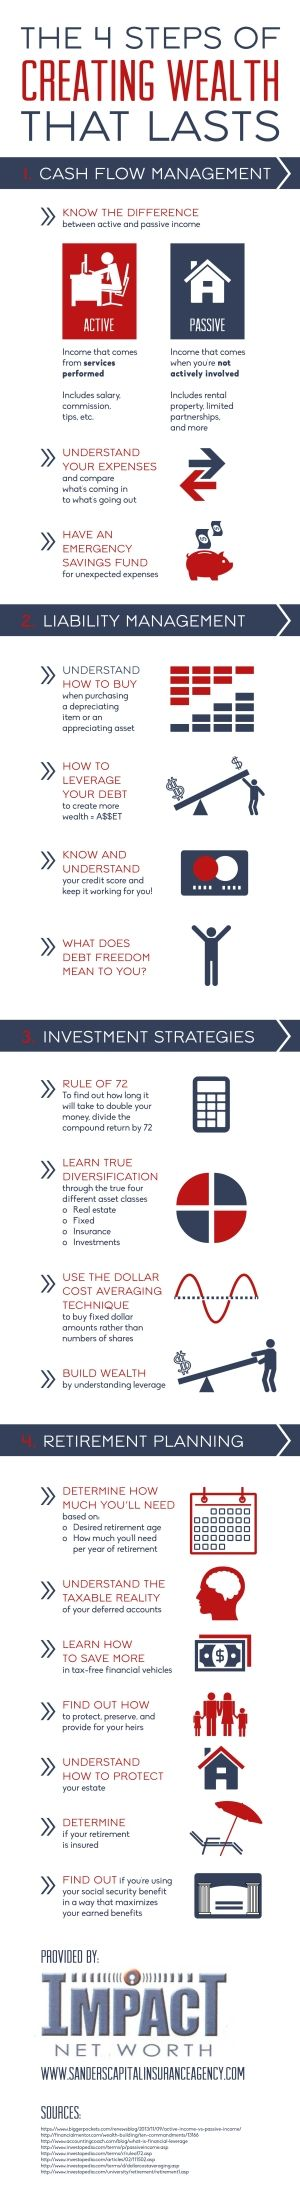 The rule of 72 states that you can find out how long it will take to double your money by dividing the compound return by 72! Take a look at this Sebastopol finance infographic to learn more about investment strategies.